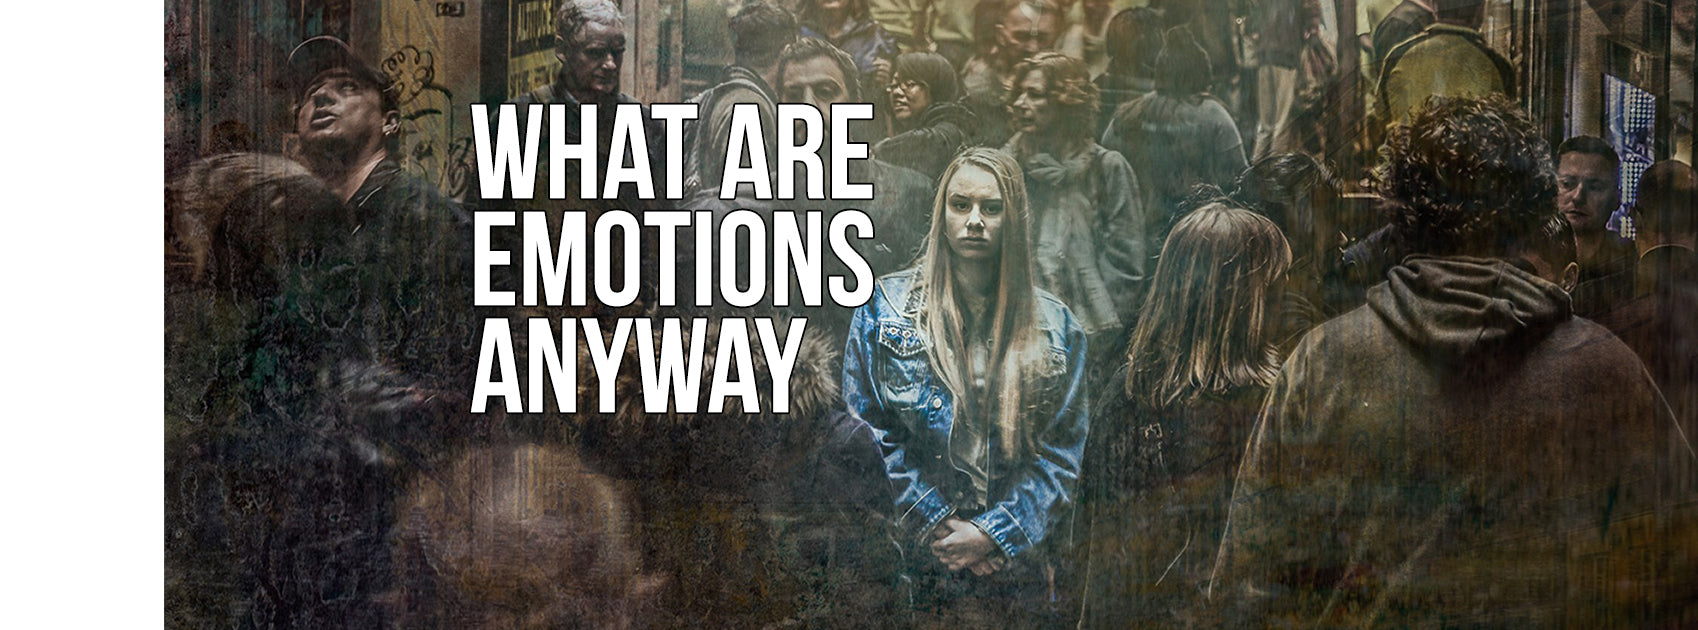 What Are Emotions Anyway?